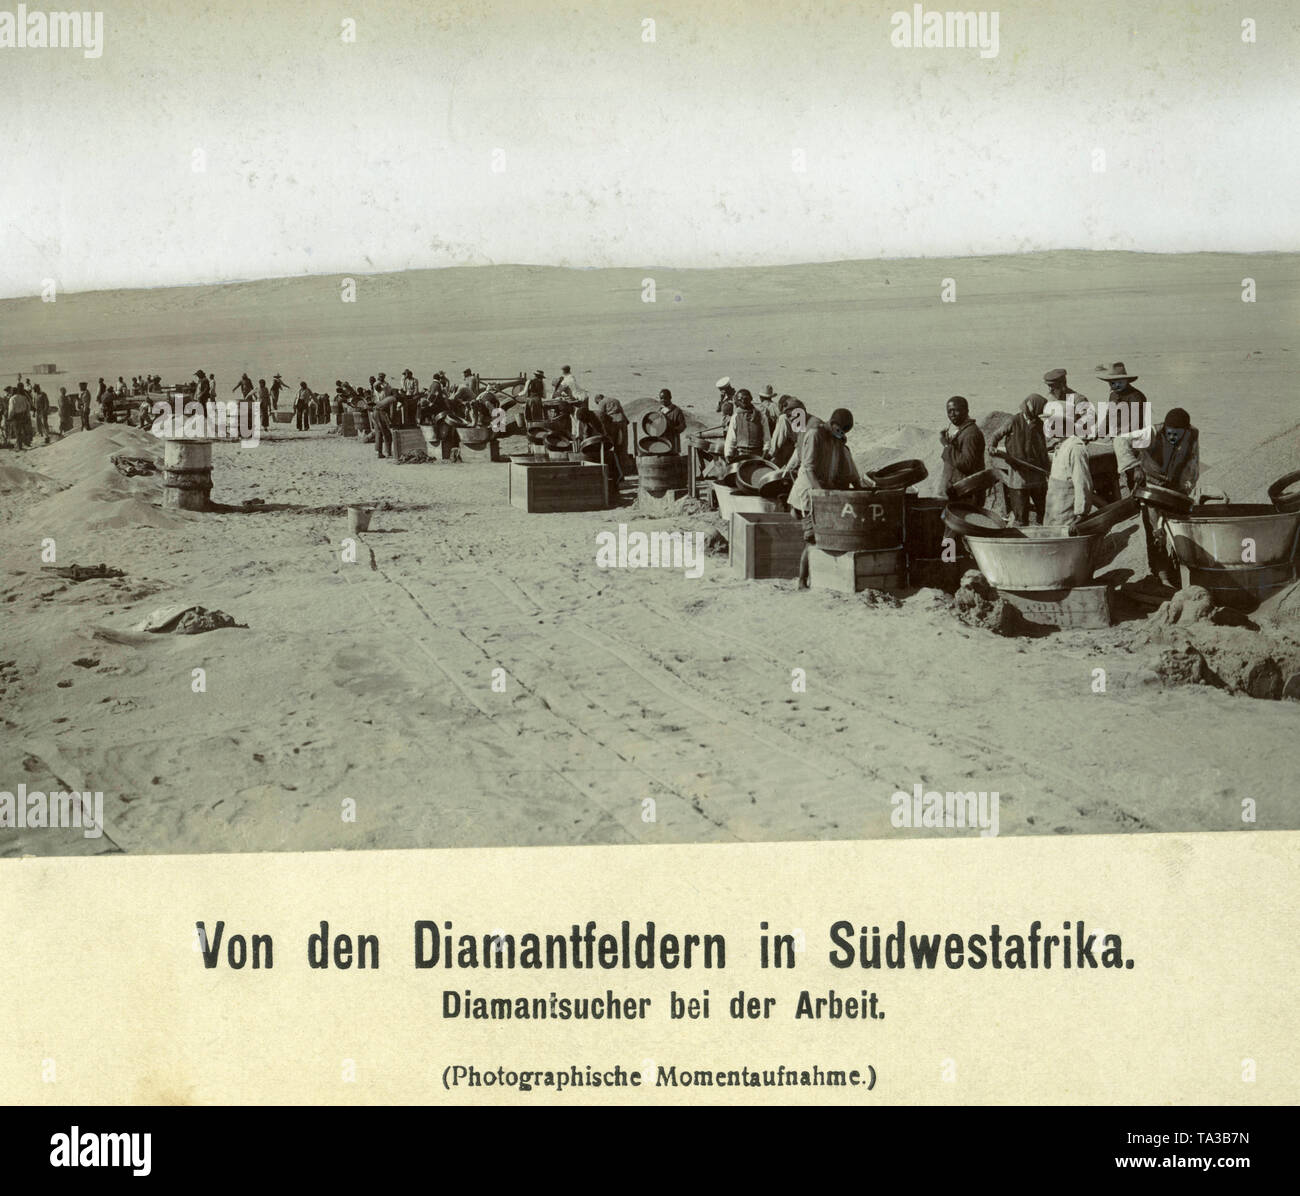 Workers in the search for diamonds on the diamond fields in German South West Africa. - Stock Image